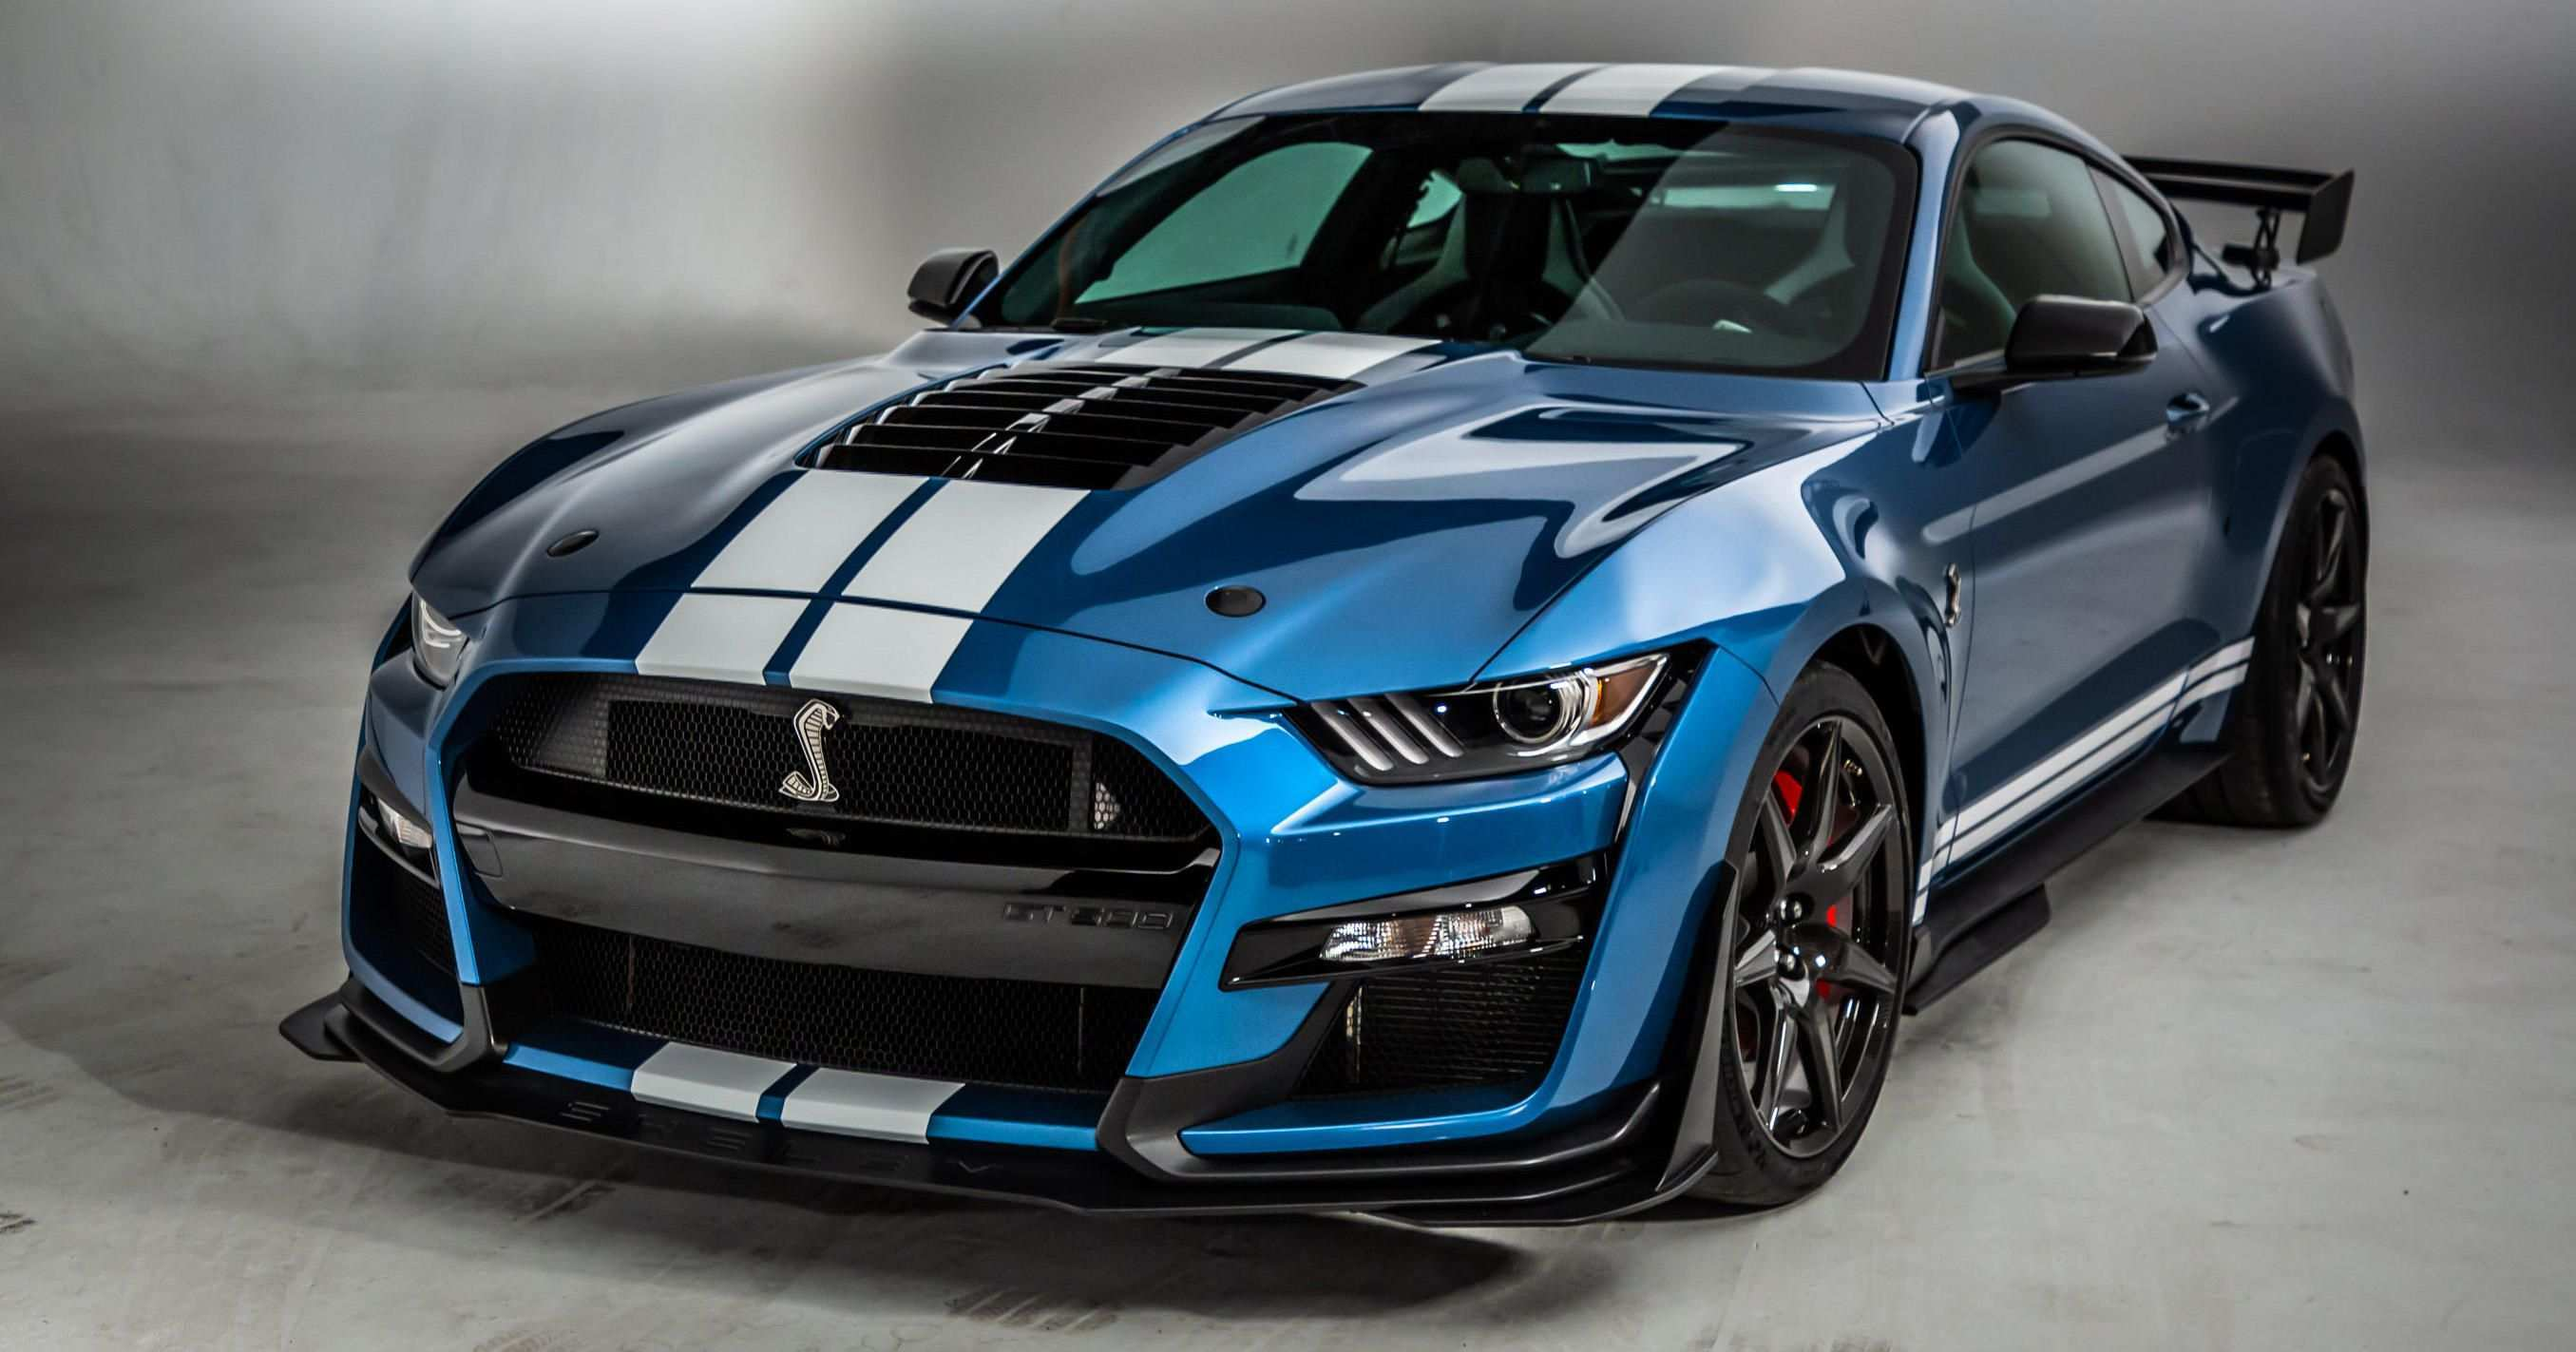 18 The 2020 Ford Mustang Gt Spy Shoot